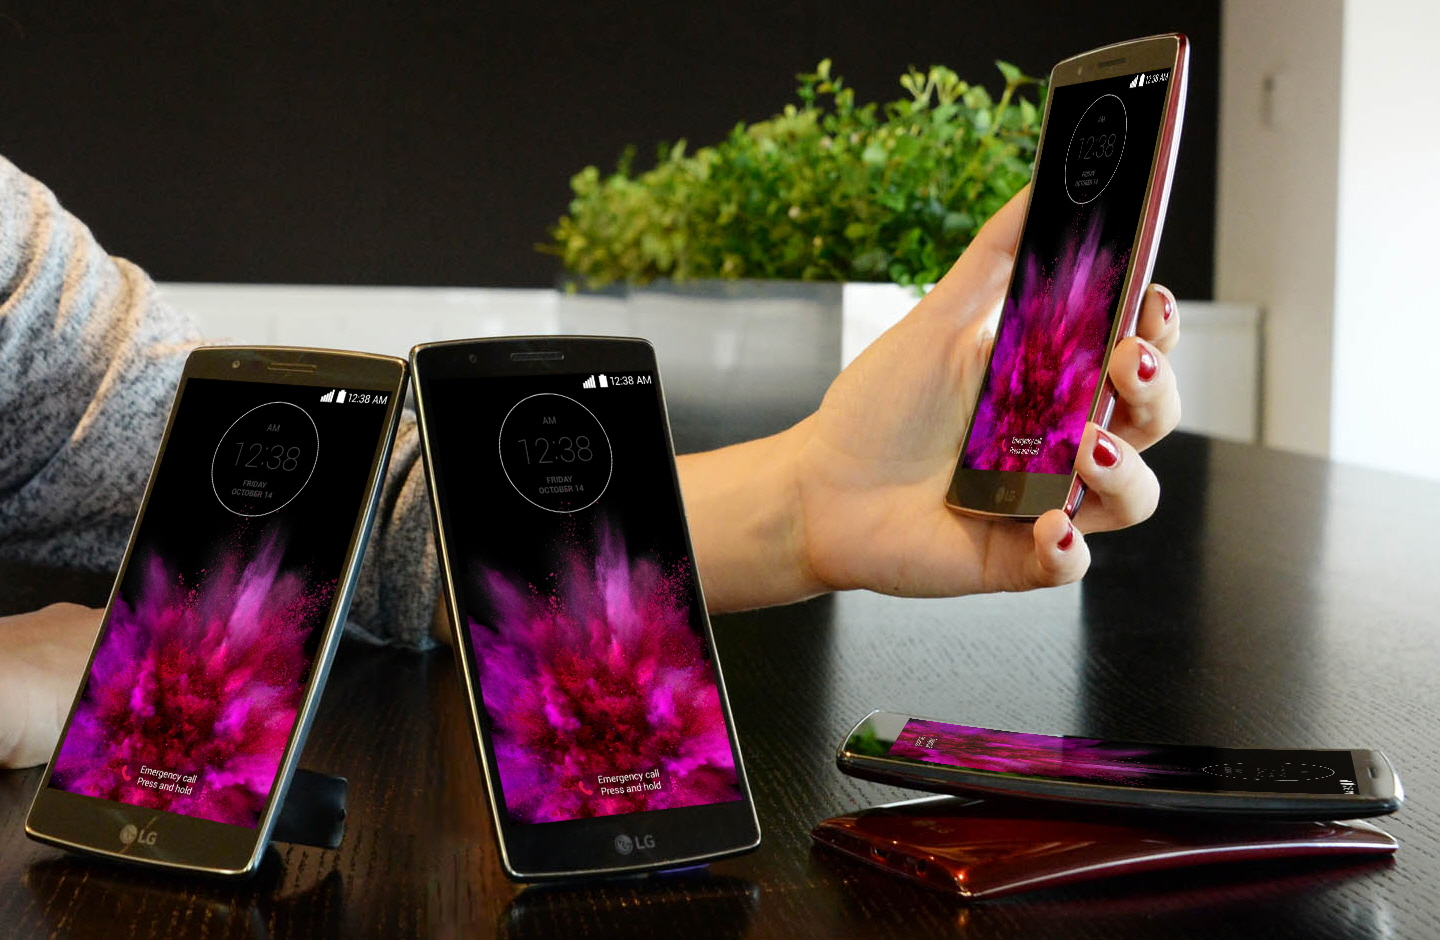 A model is putting her arm down on a table holing a LG G Flex2. And two LG G Flex2s are standing on the table showing their fronts and other twos are lying on the table – each showing front and back.